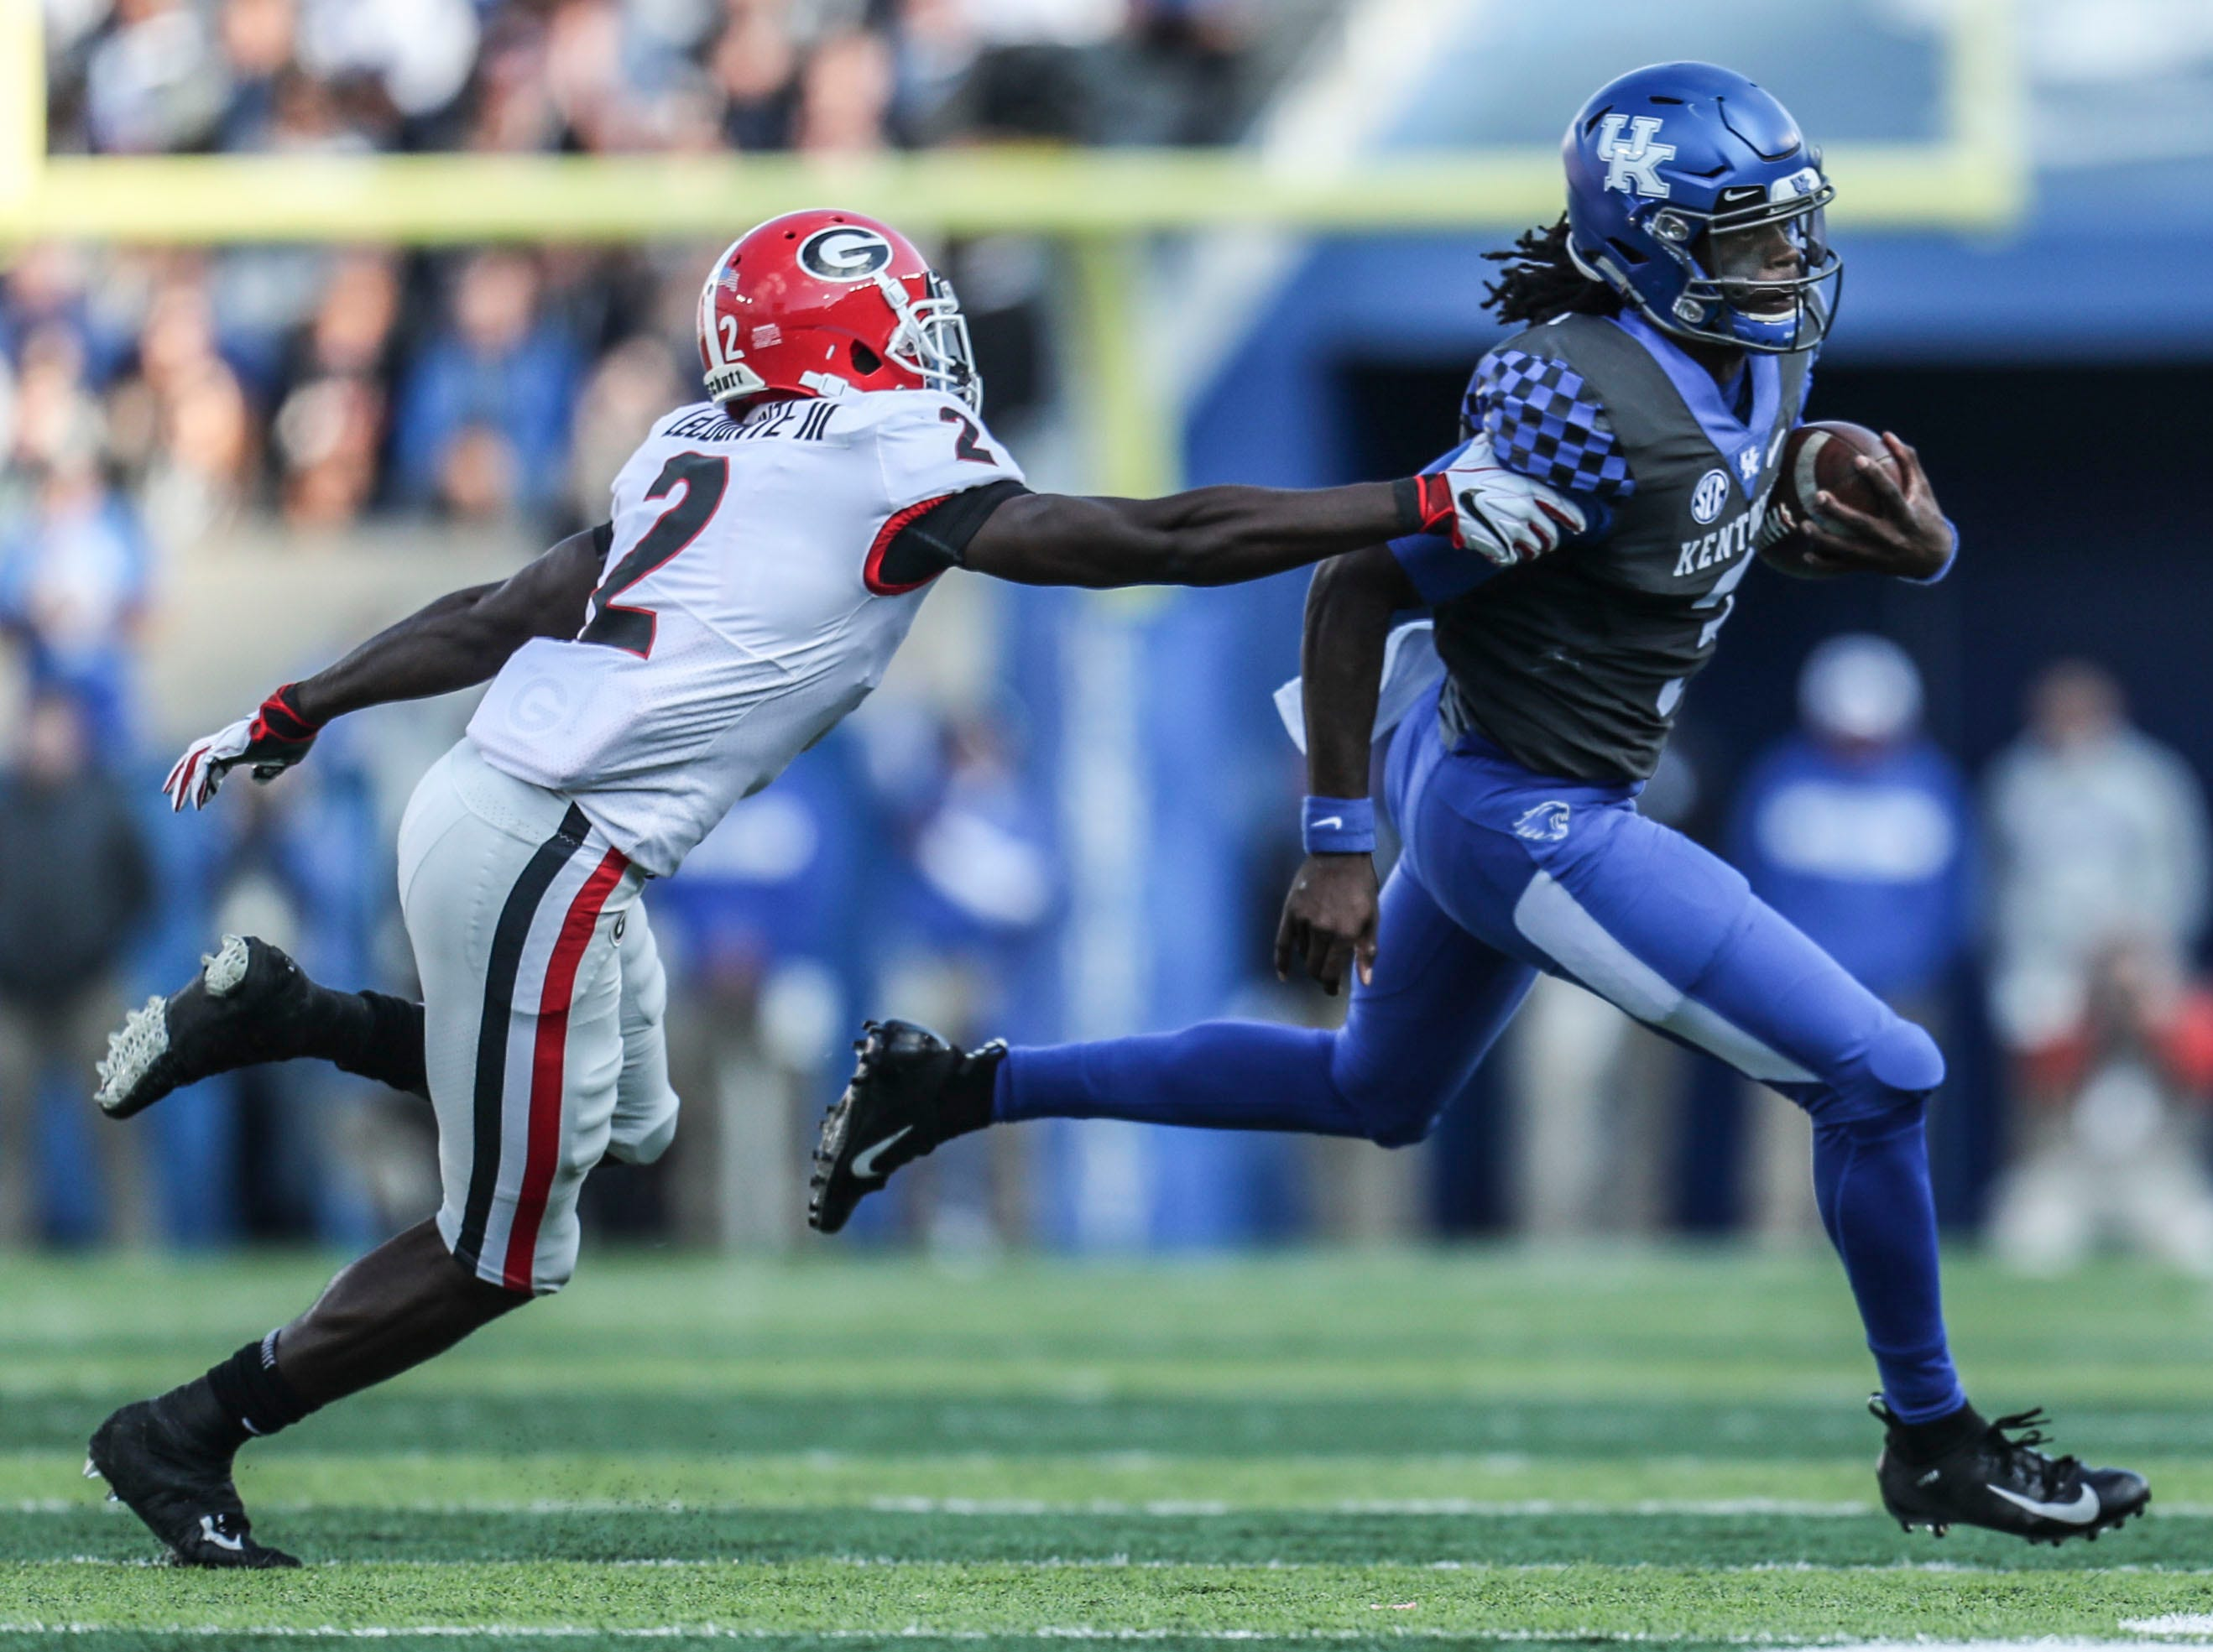 Kentucky's Terry Wilson tried to evade Goergia's Richard LeCounte in the first half.  Saturday. Nov. 3, 2018